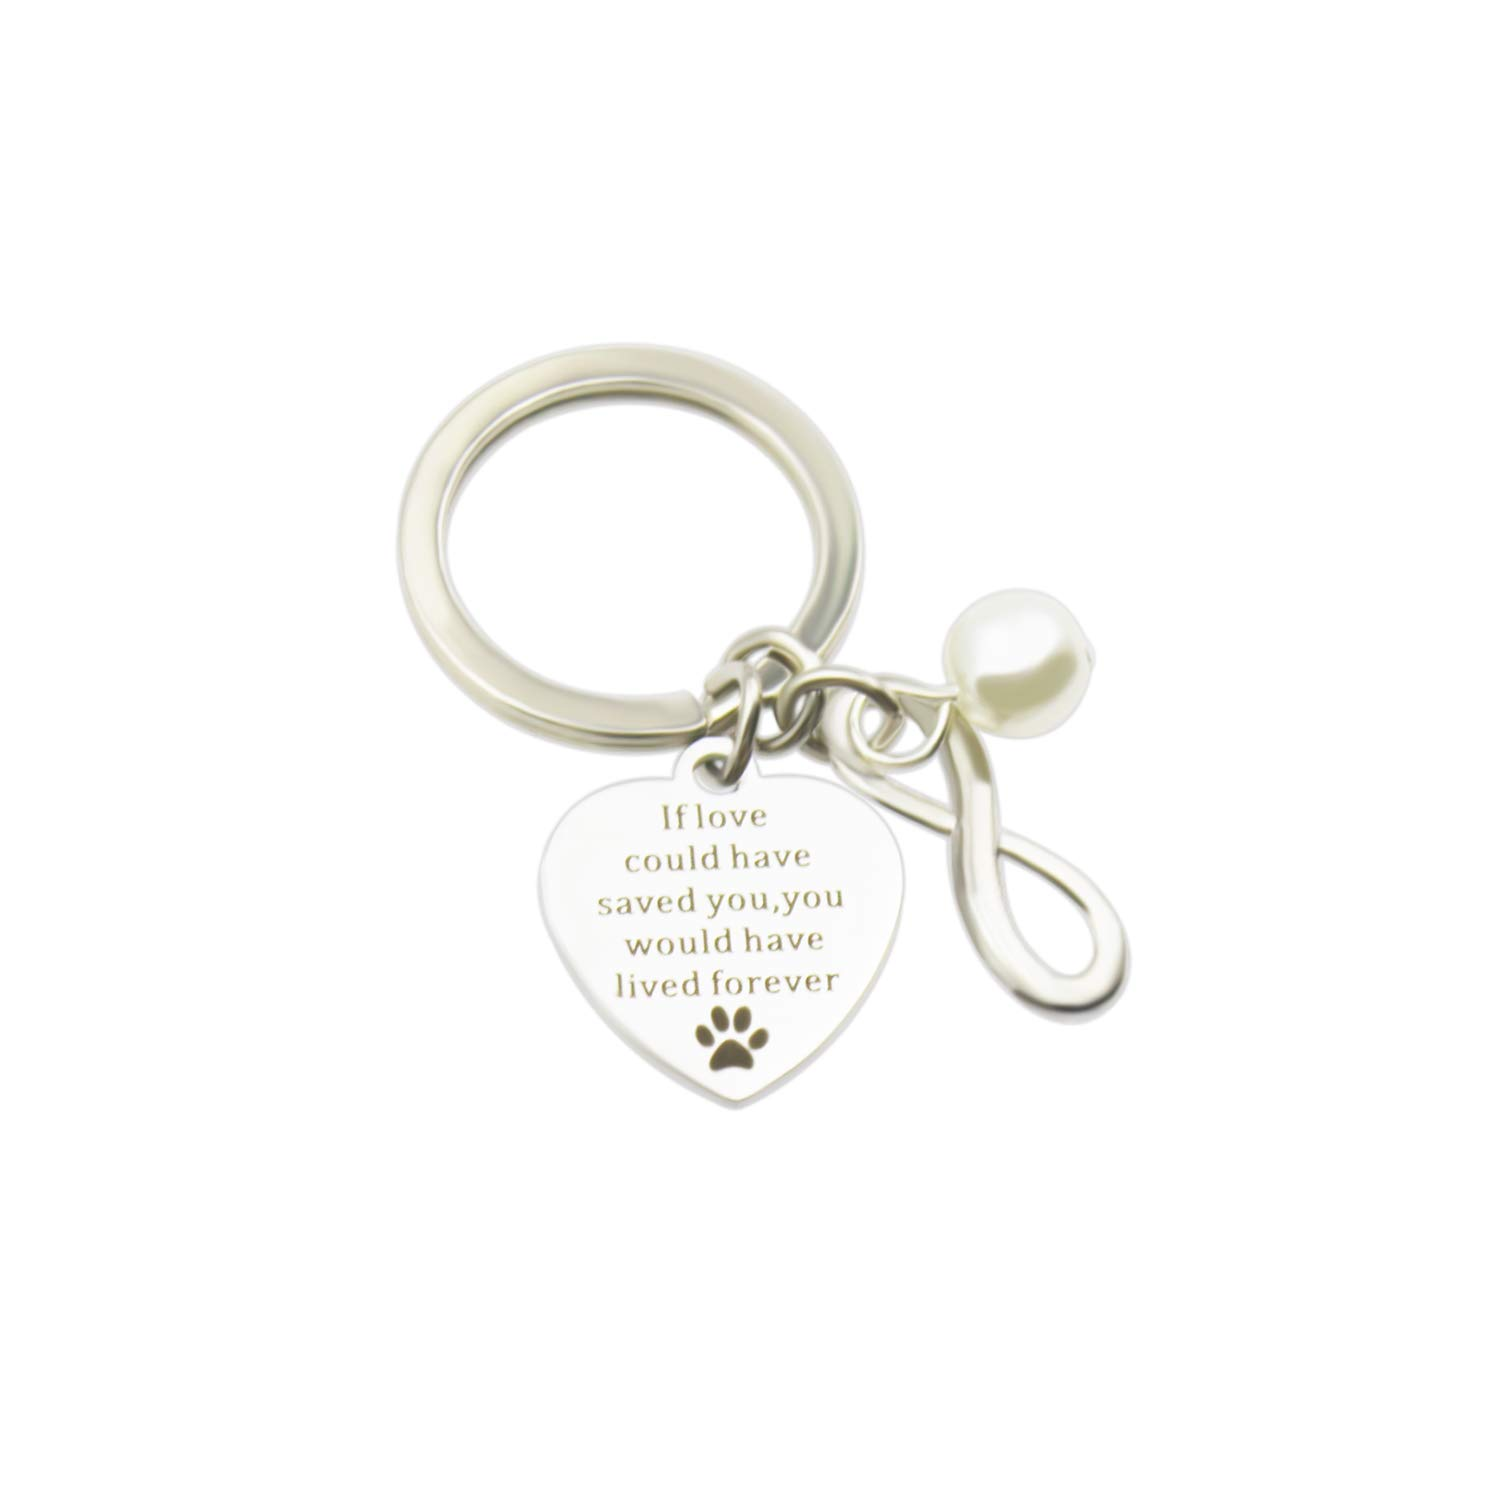 Zizh Pet Lovers Keychain Dog Cat Jewelry If love could have saved you, you would have lived forever